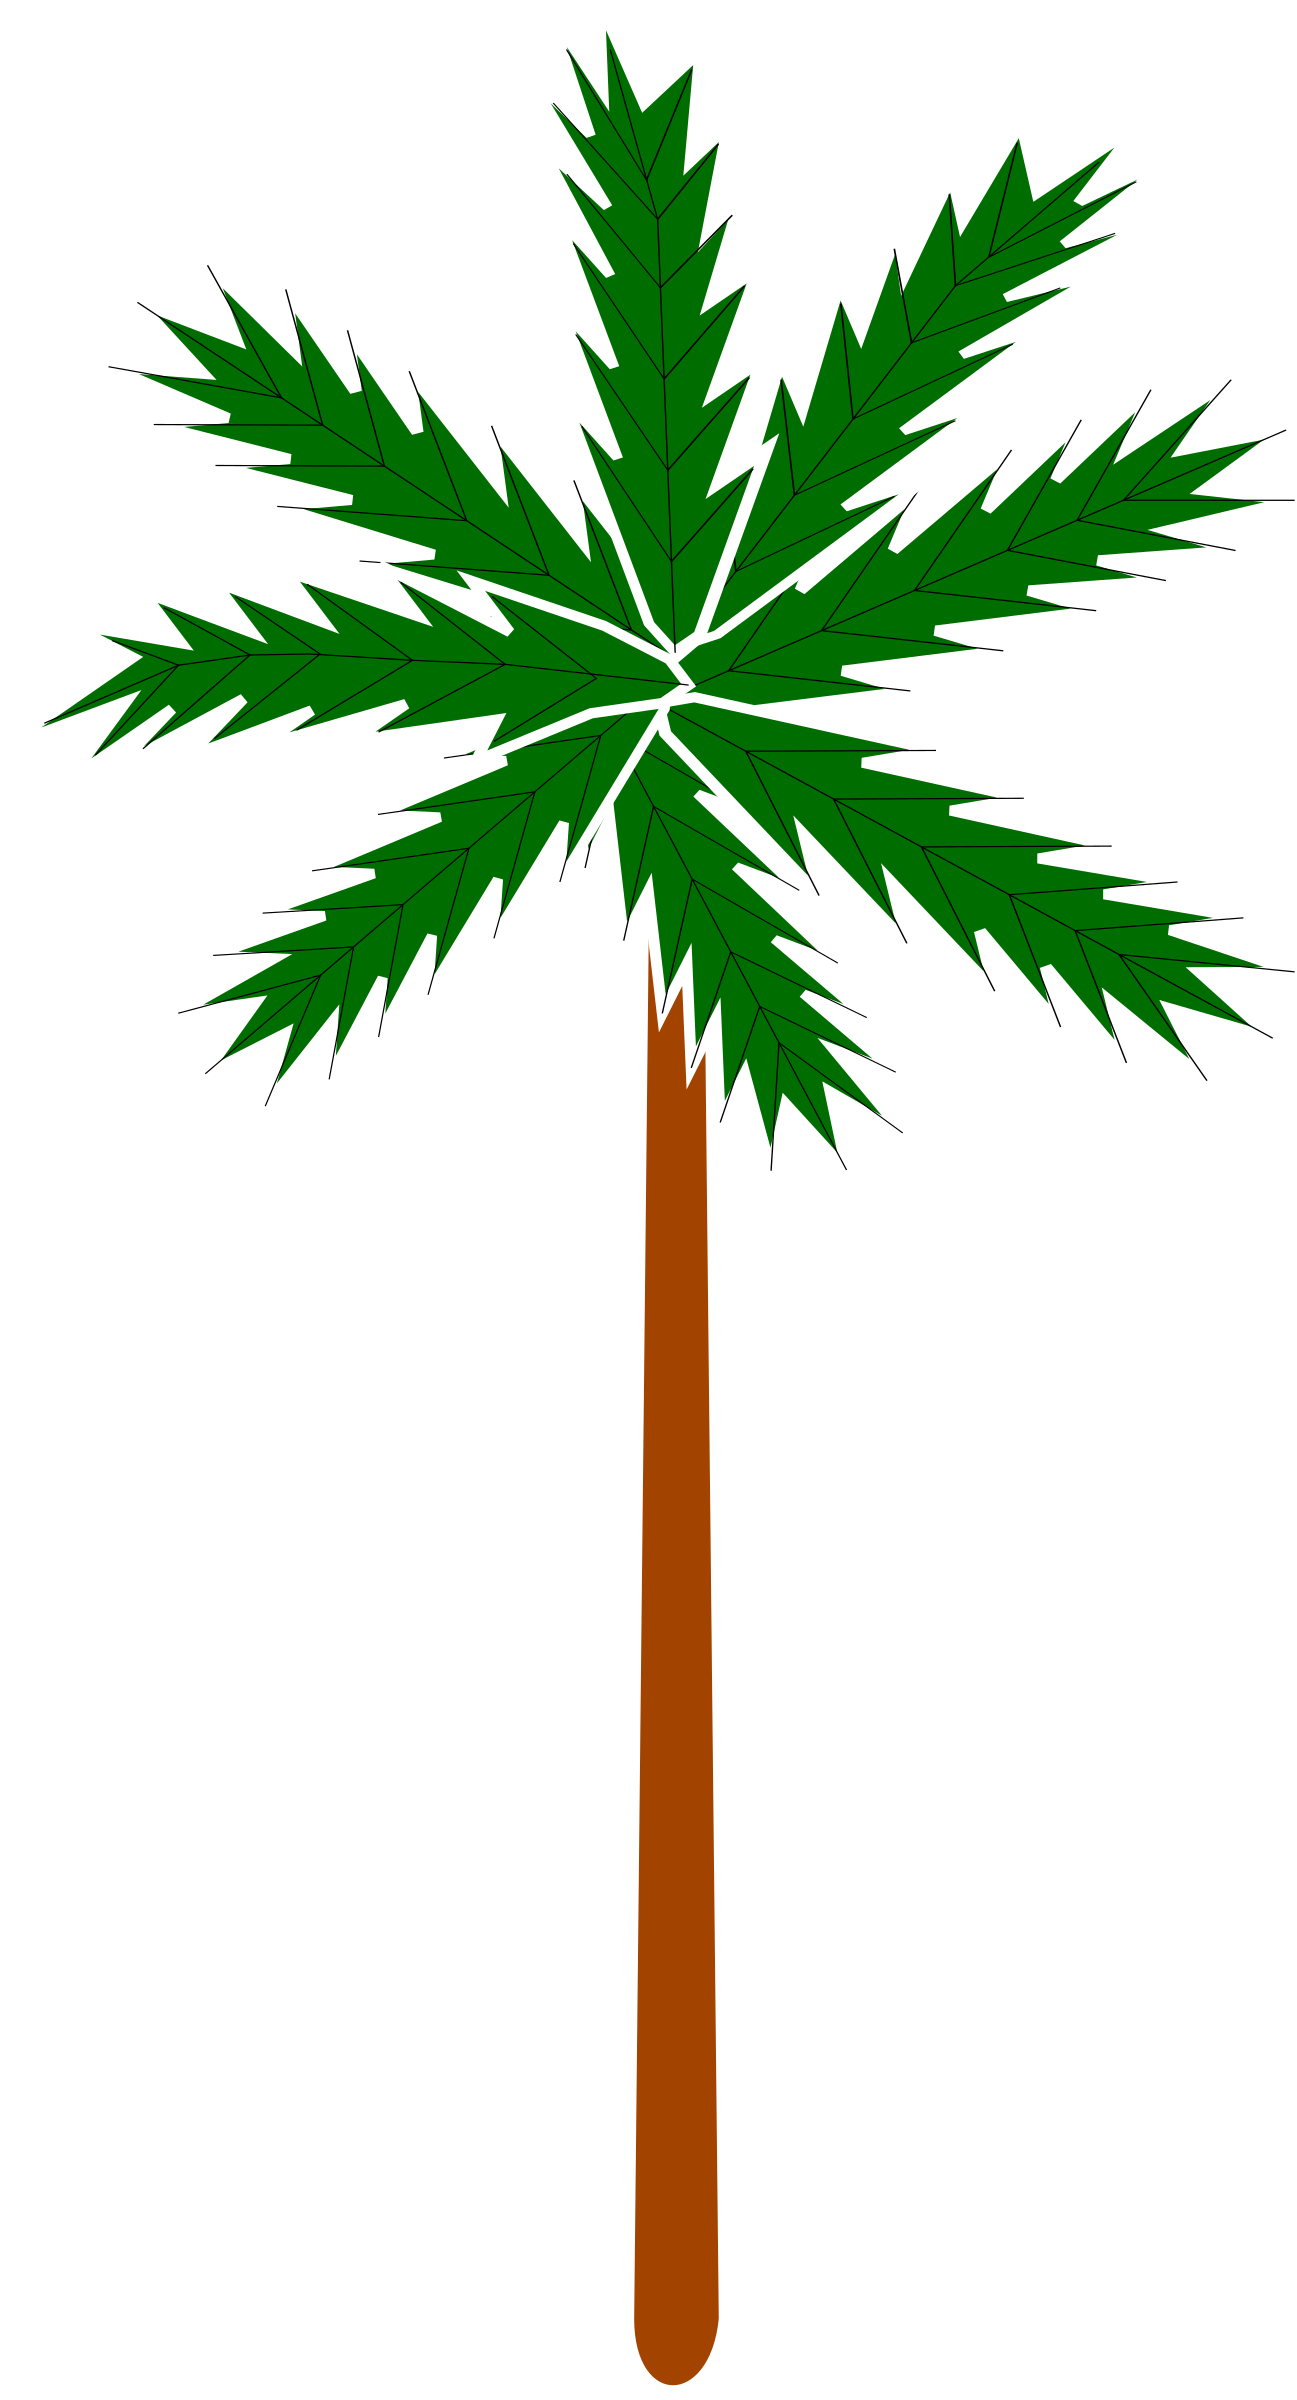 Stylised palm tree 2 by Firkin